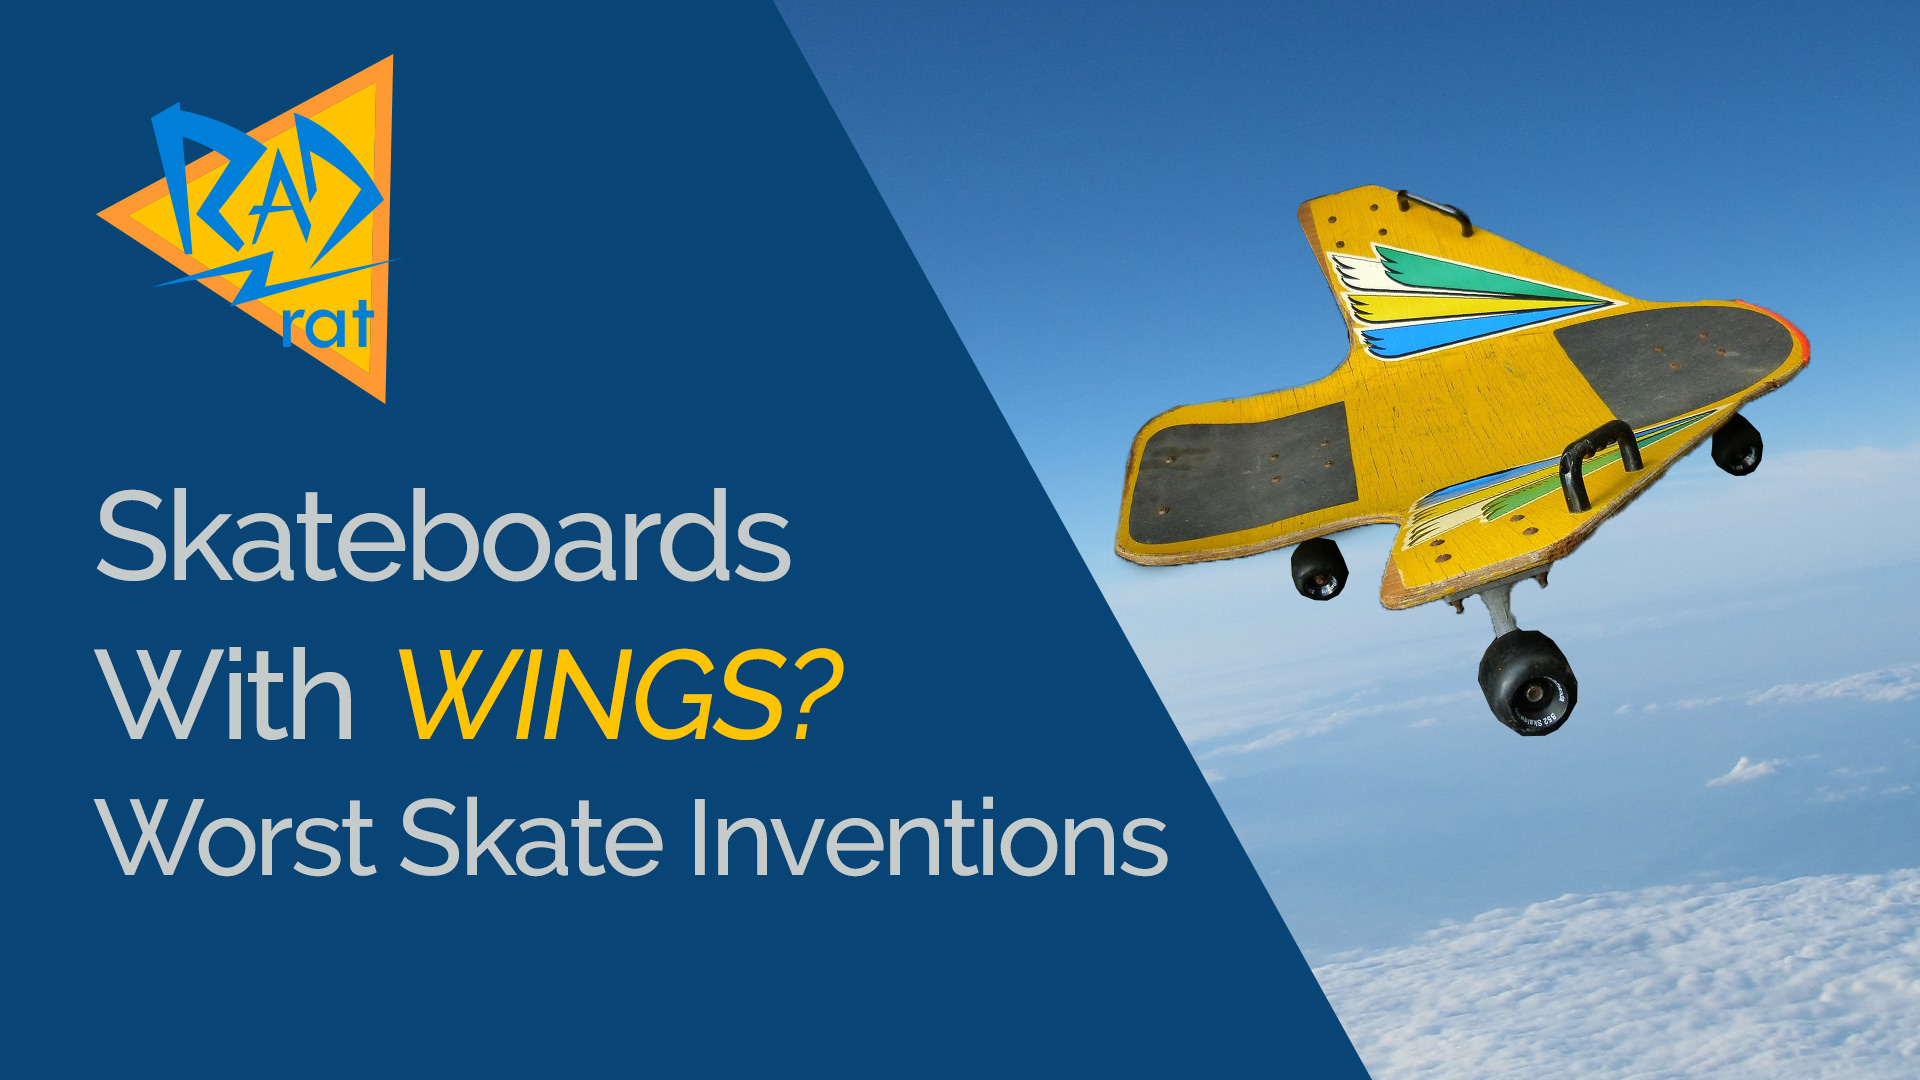 A Skateboard with WINGS? Worst Skateboard Inventions of All